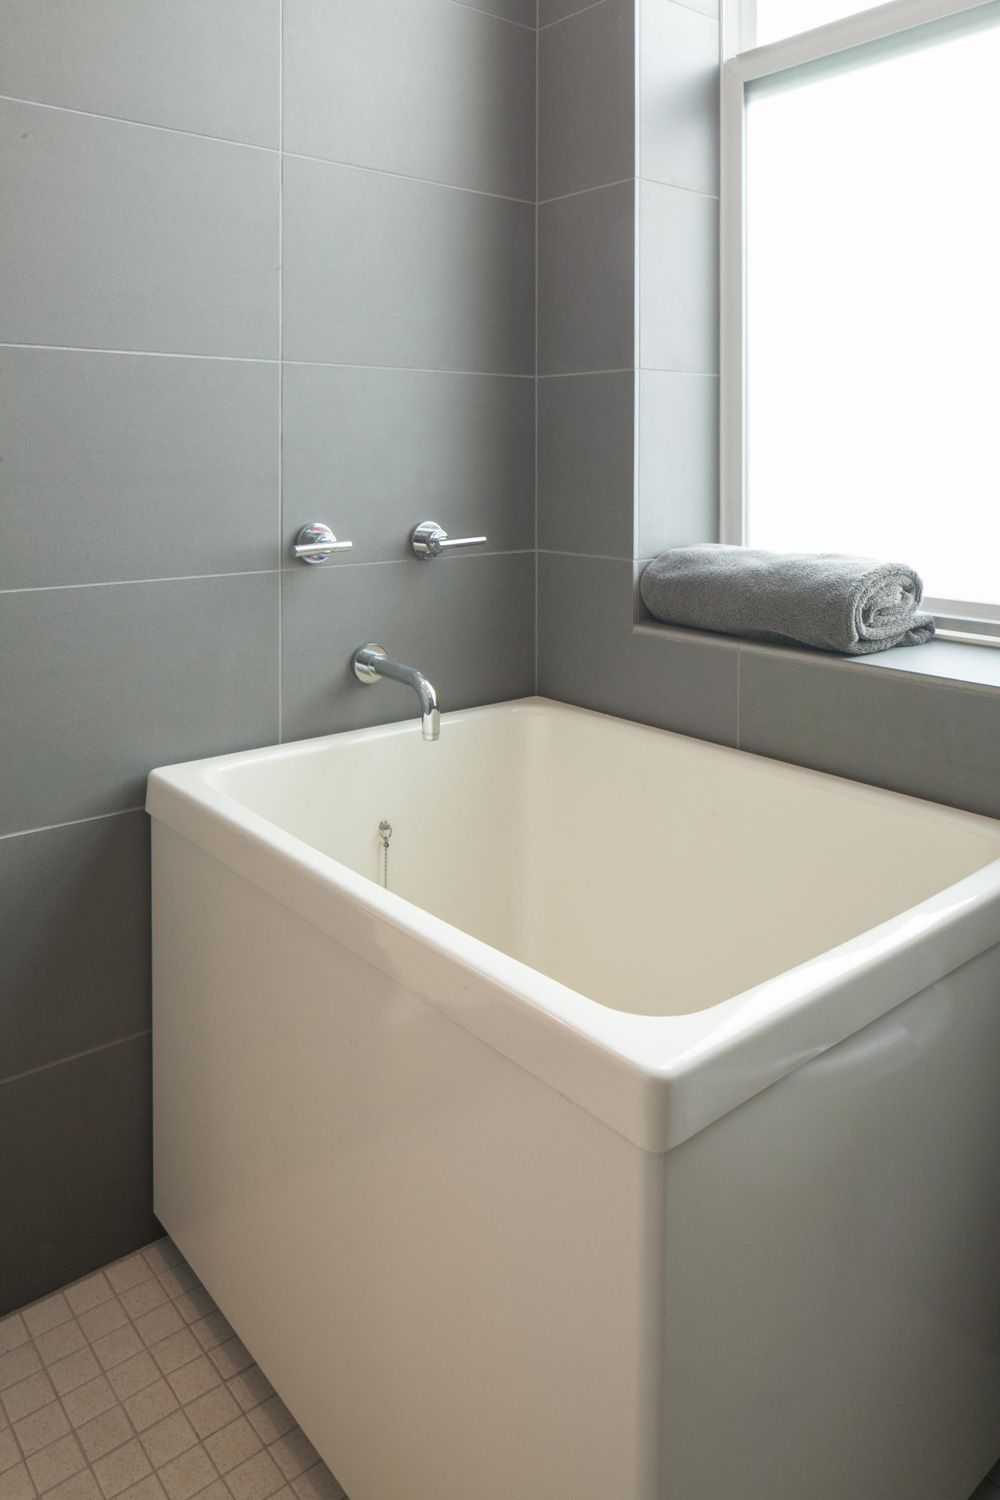 Square Tub Japanese Soaking Tub  Ofuro Tubsquare With A Builtin Seat